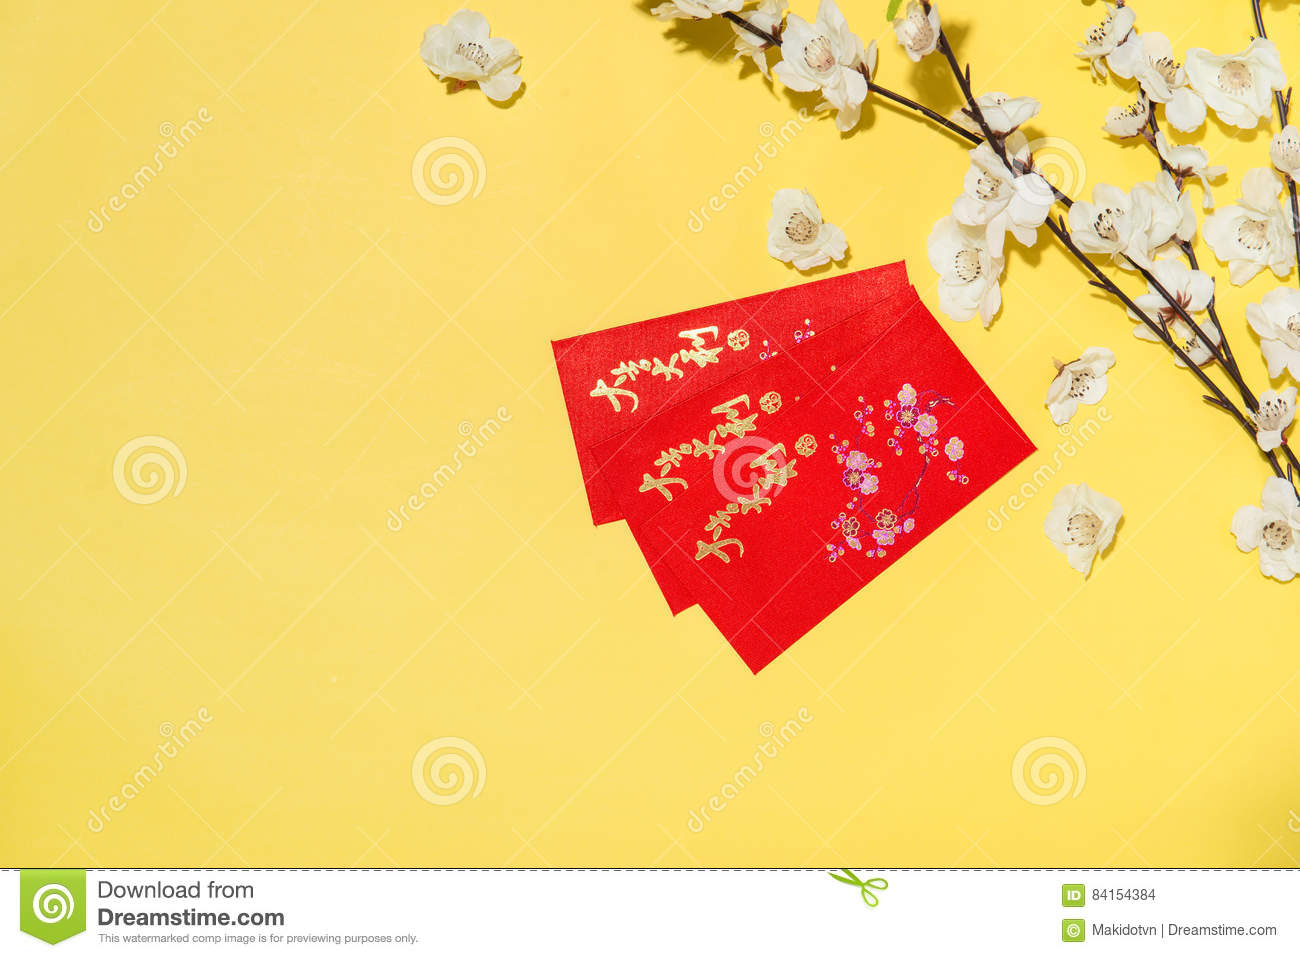 chinese new year decoration items on yellow background text mea